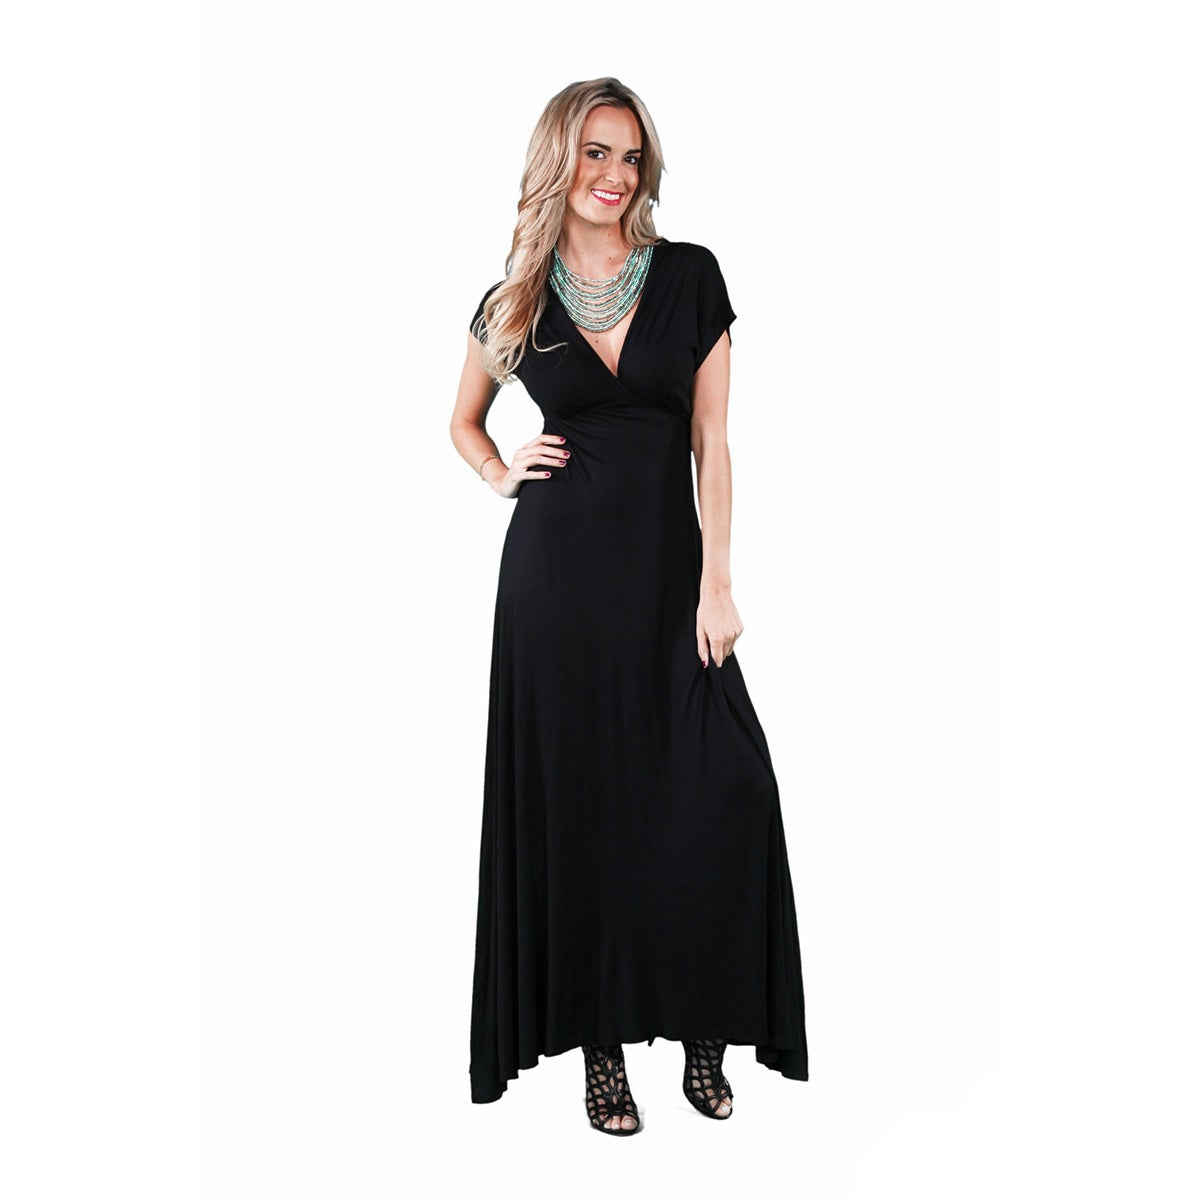 fd0f6b49c04 Shop 24 7 Comfort Apparel Women s Faux Wrap Maxi Dress - On Sale ...